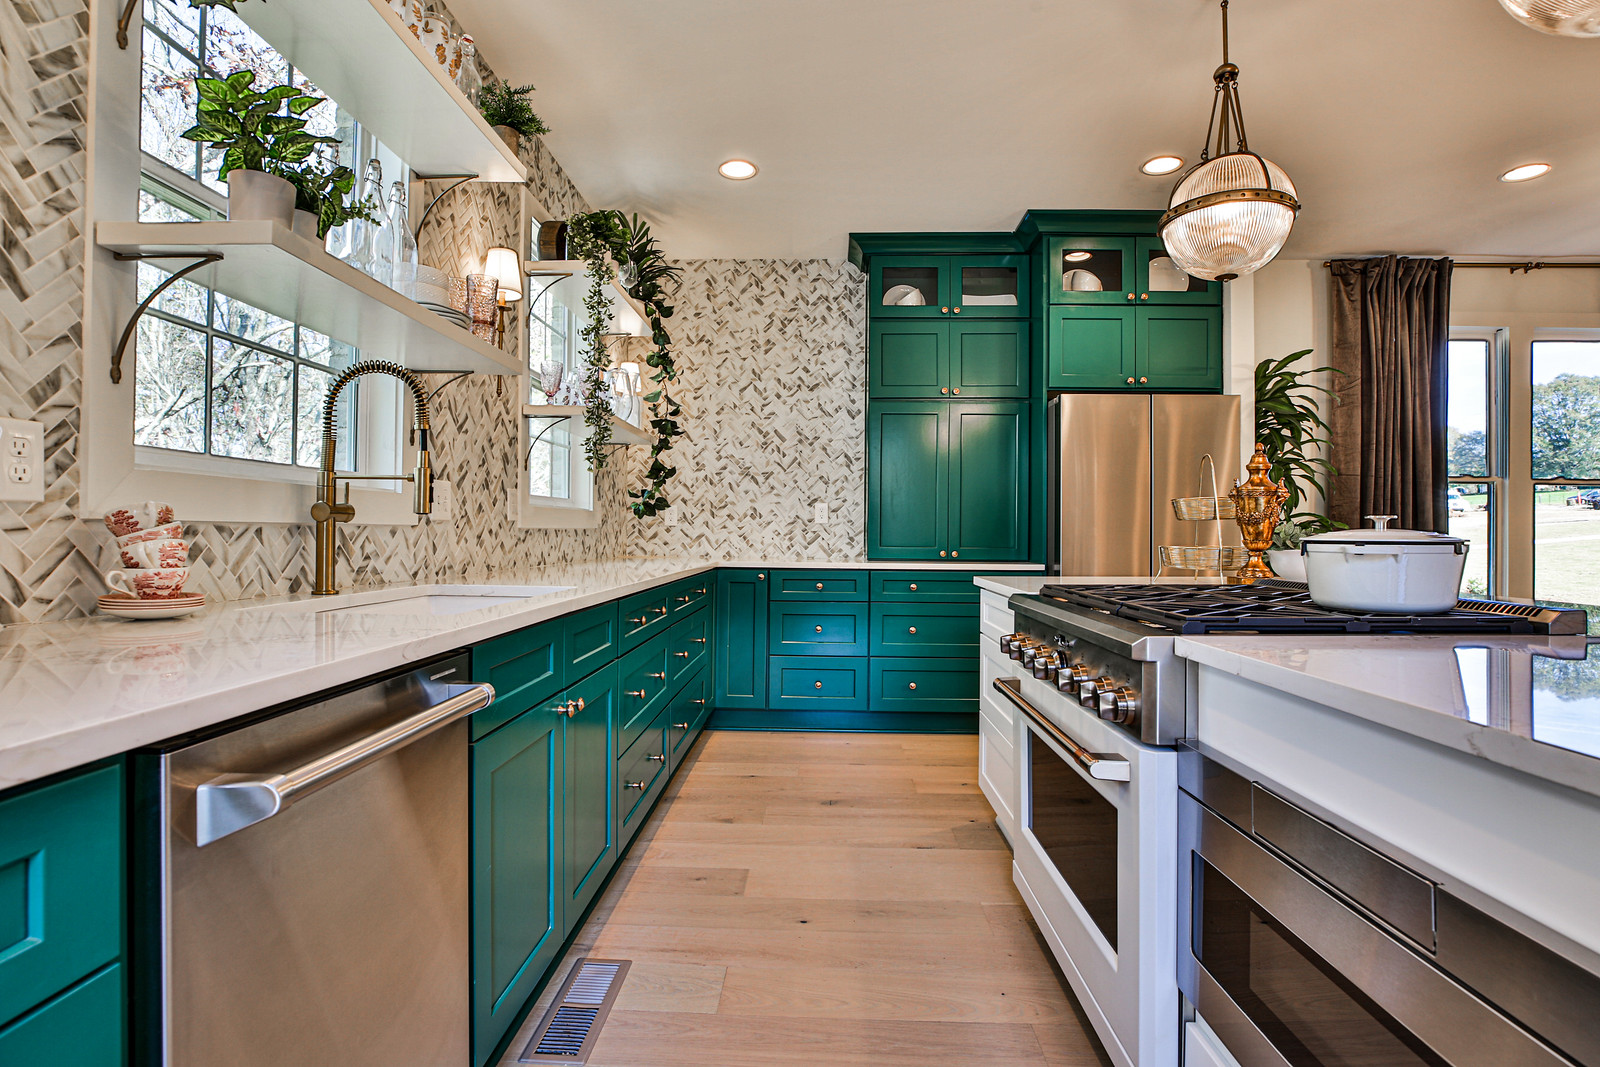 A large modern kitchen with green cabinetry.